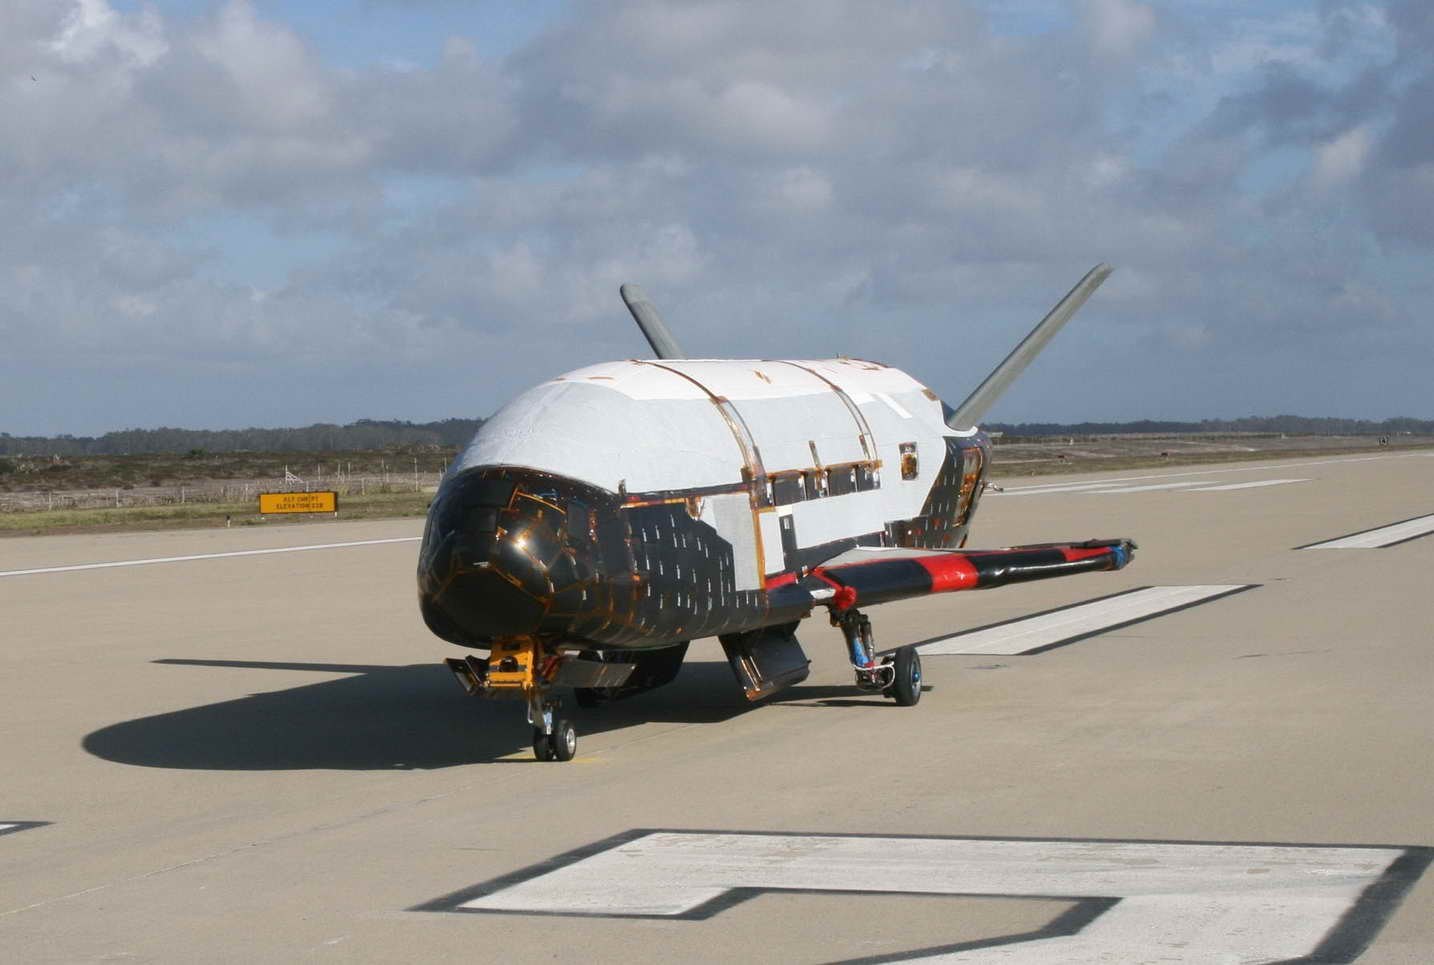 Boeing_X-37B_after_ground_tests_at_Vandenberg_AFB_October_2007